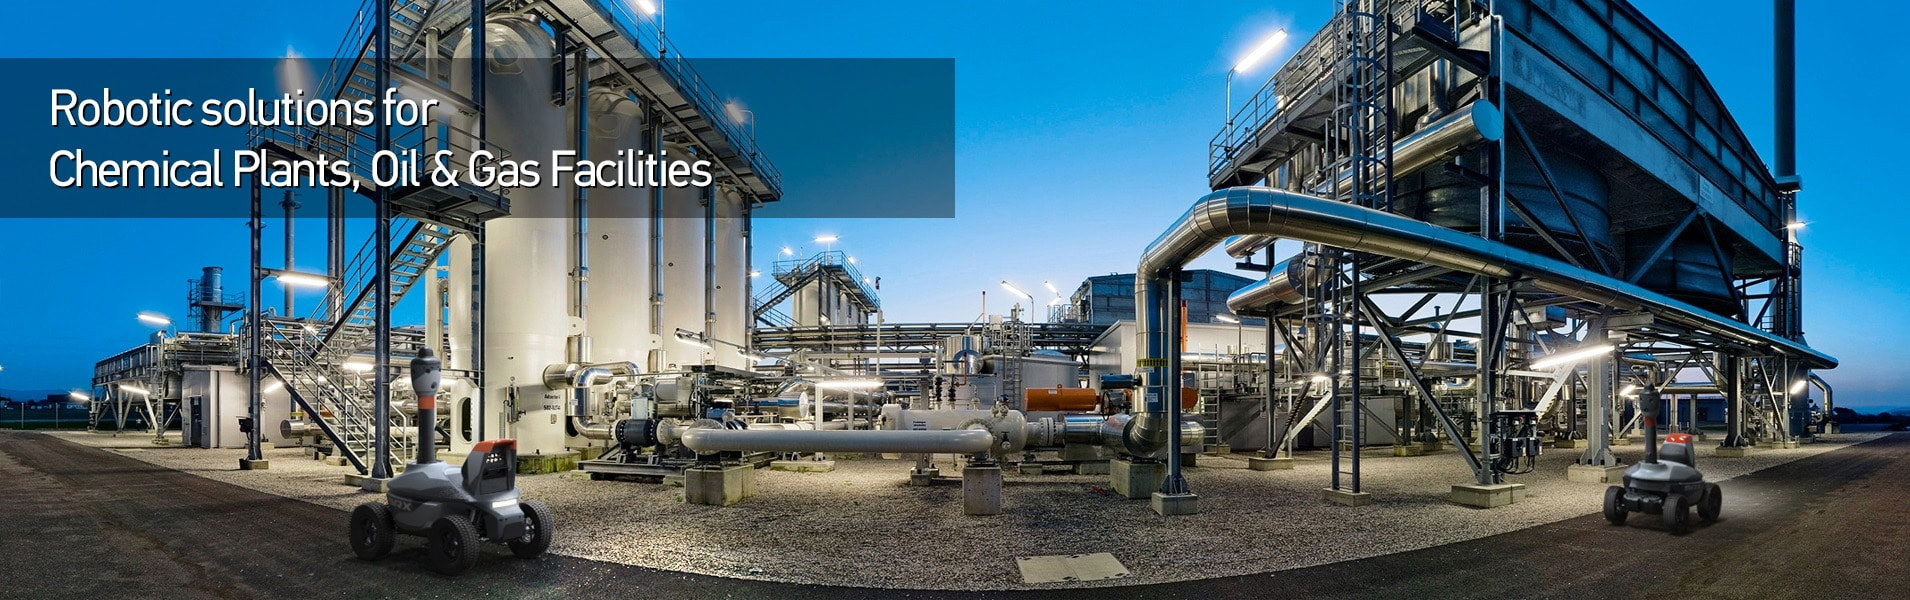 Robotics solutions for Chemical Plants, Oil and Gas Facilities